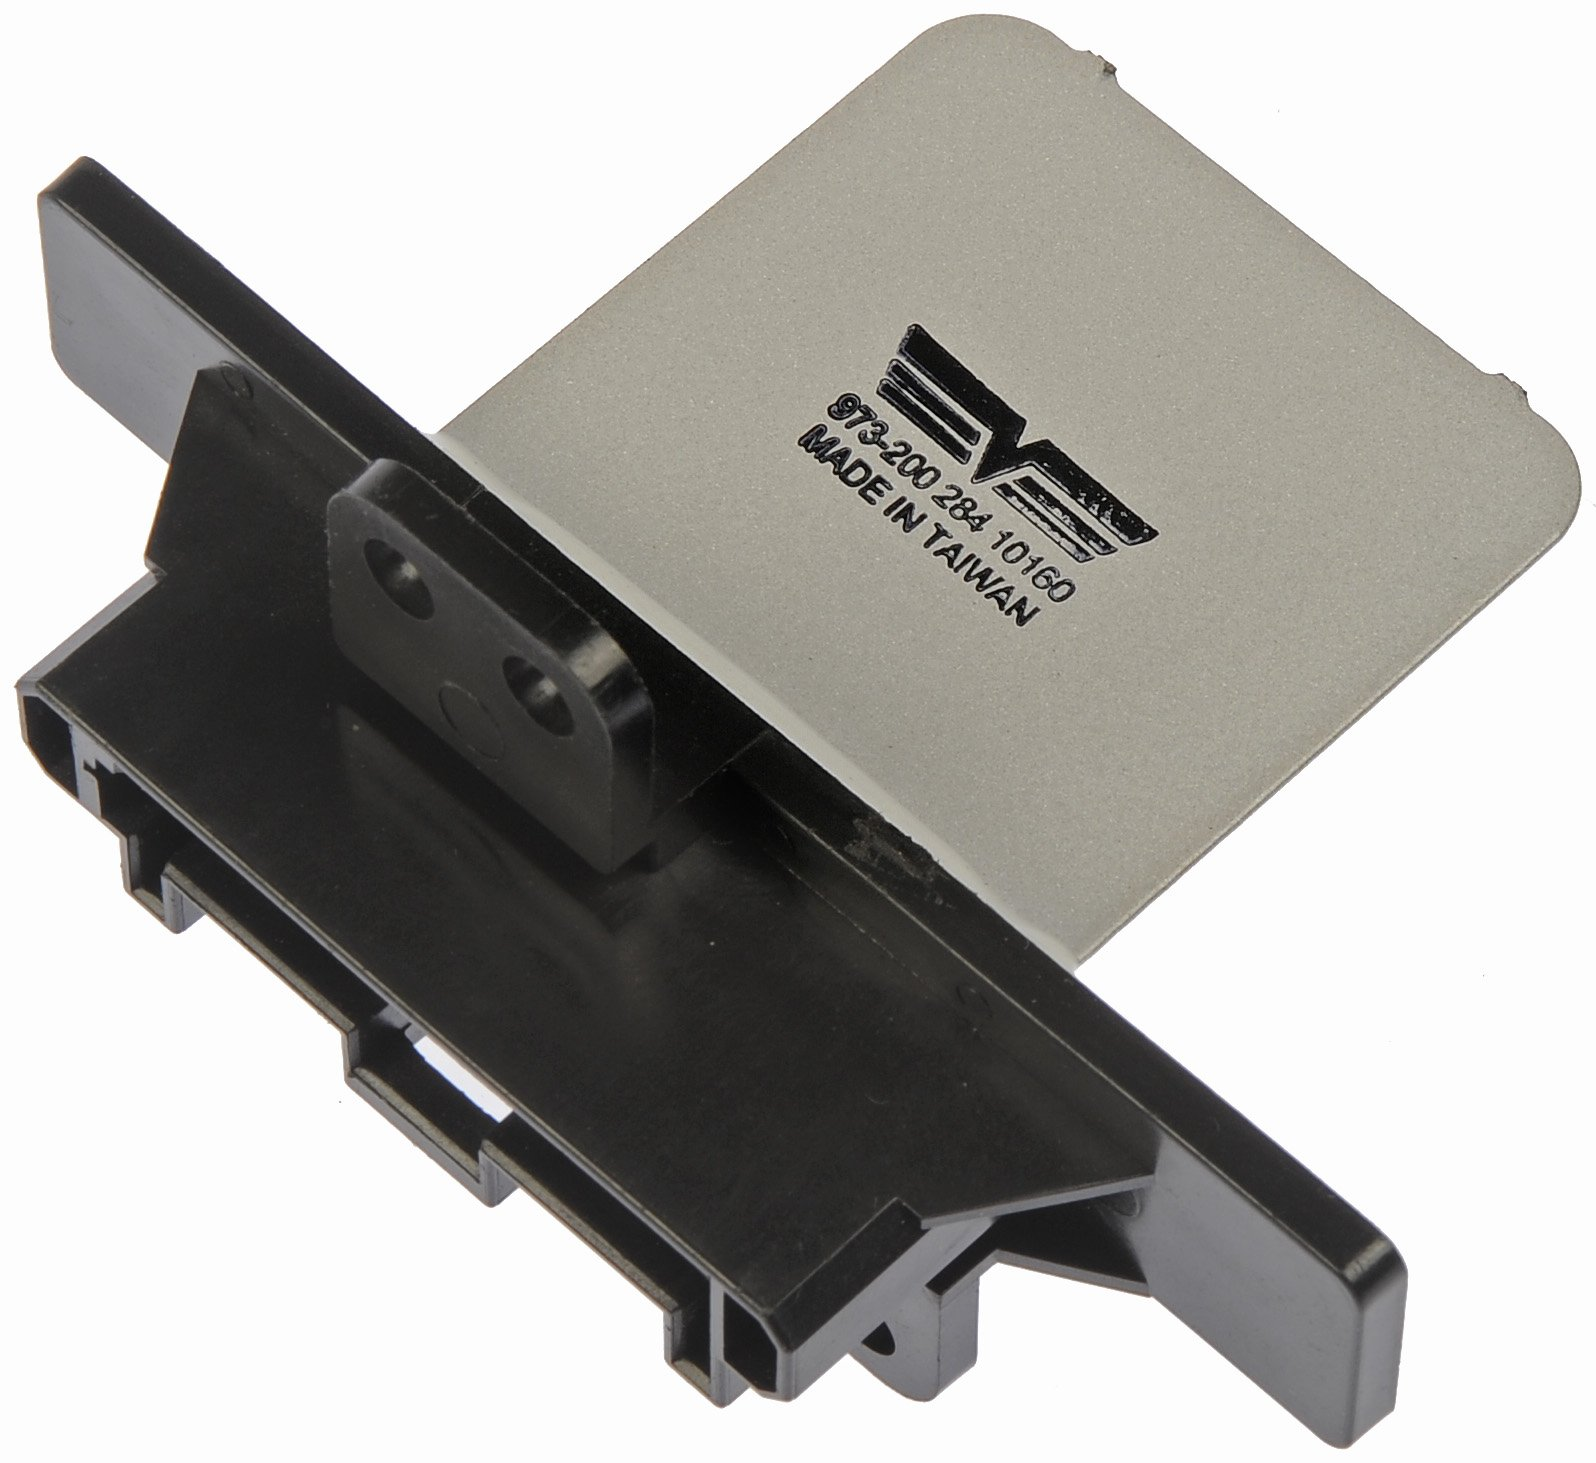 Dorman 973-200 Blower Motor Resistor for Nissan Frontier/Sentra/Xterra/200SX by Dorman